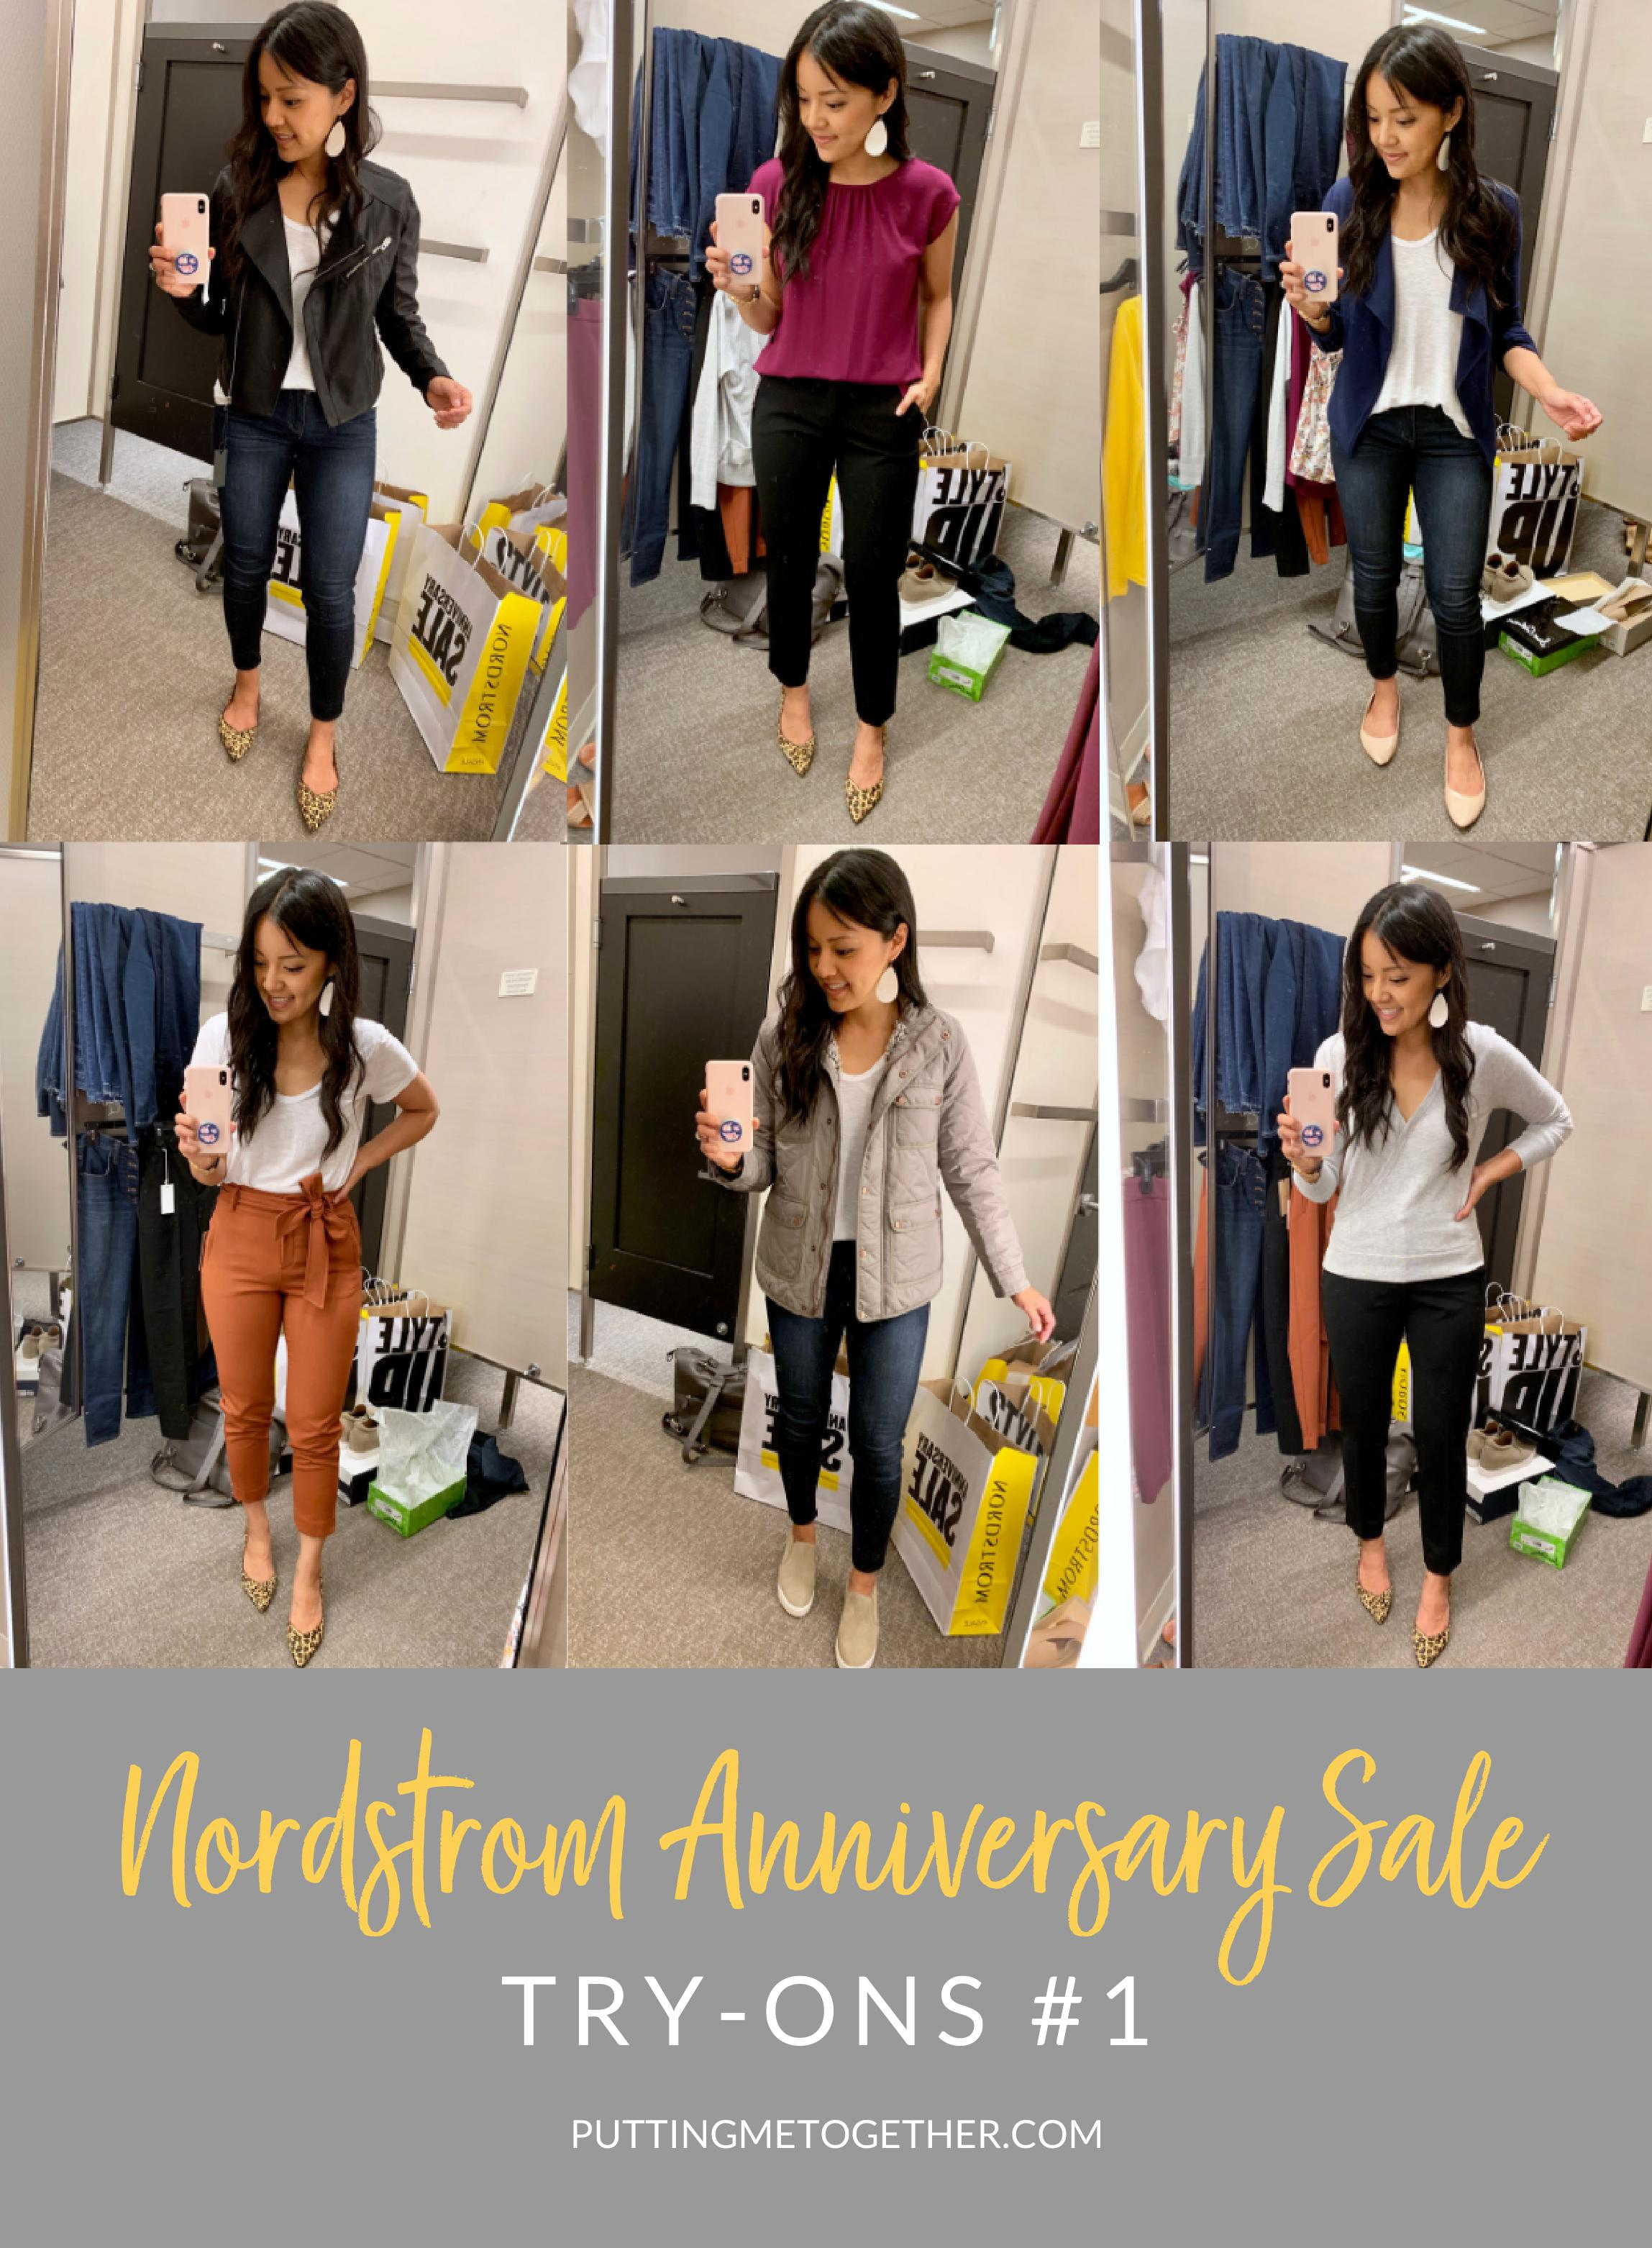 db361c955 Nordstrom Anniversary Sale Reviews of Fall Staples + Workwear + More